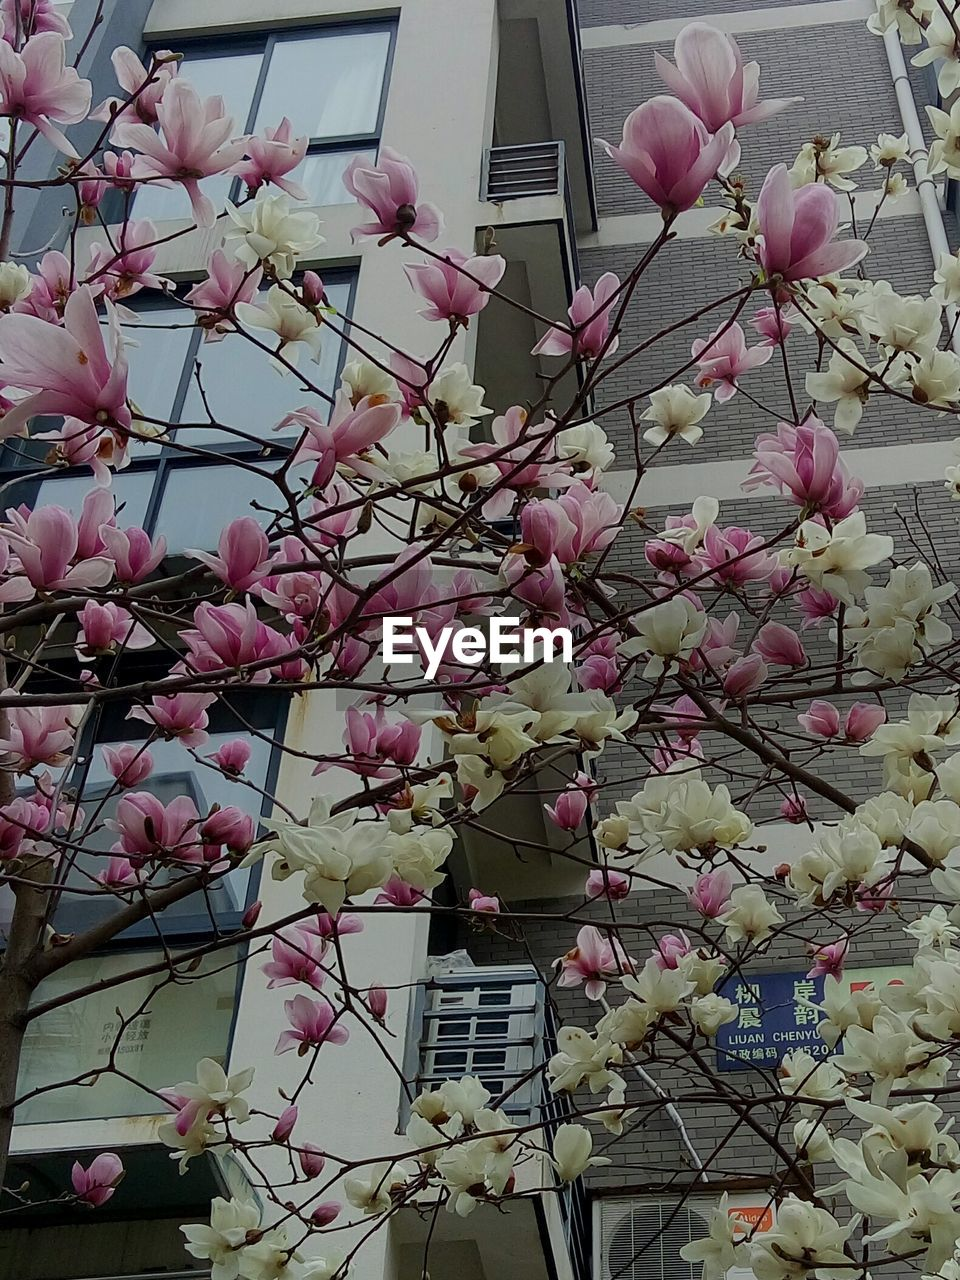 flower, growth, beauty in nature, branch, low angle view, fragility, pink color, magnolia, blossom, tree, freshness, nature, springtime, petal, no people, outdoors, day, building exterior, architecture, blooming, built structure, close-up, flower head